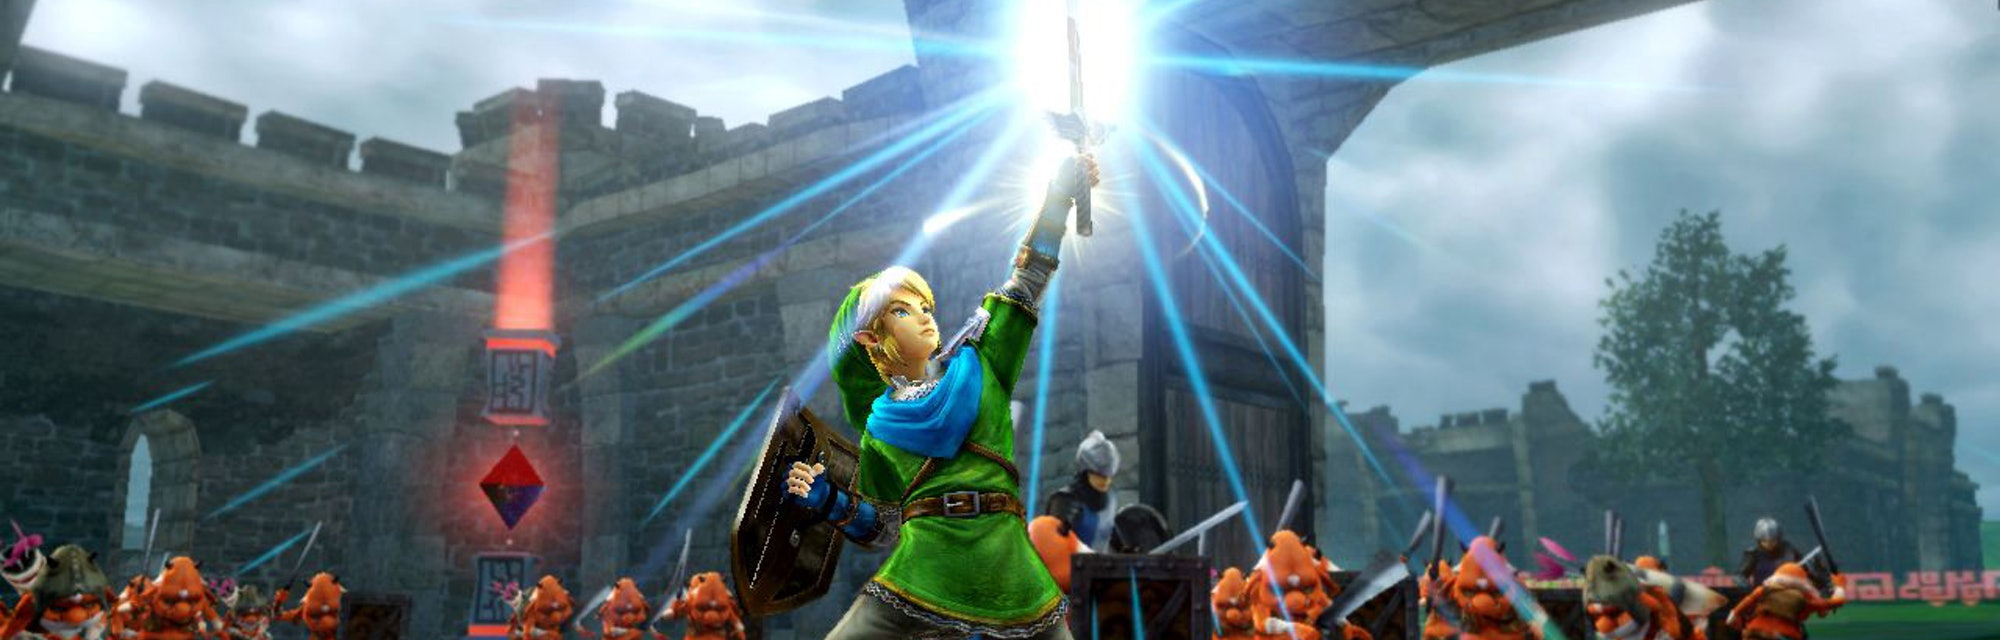 Hyrule Warriors Age Of Calamity Could Set Up Botw 2 In 1 Crucial Way